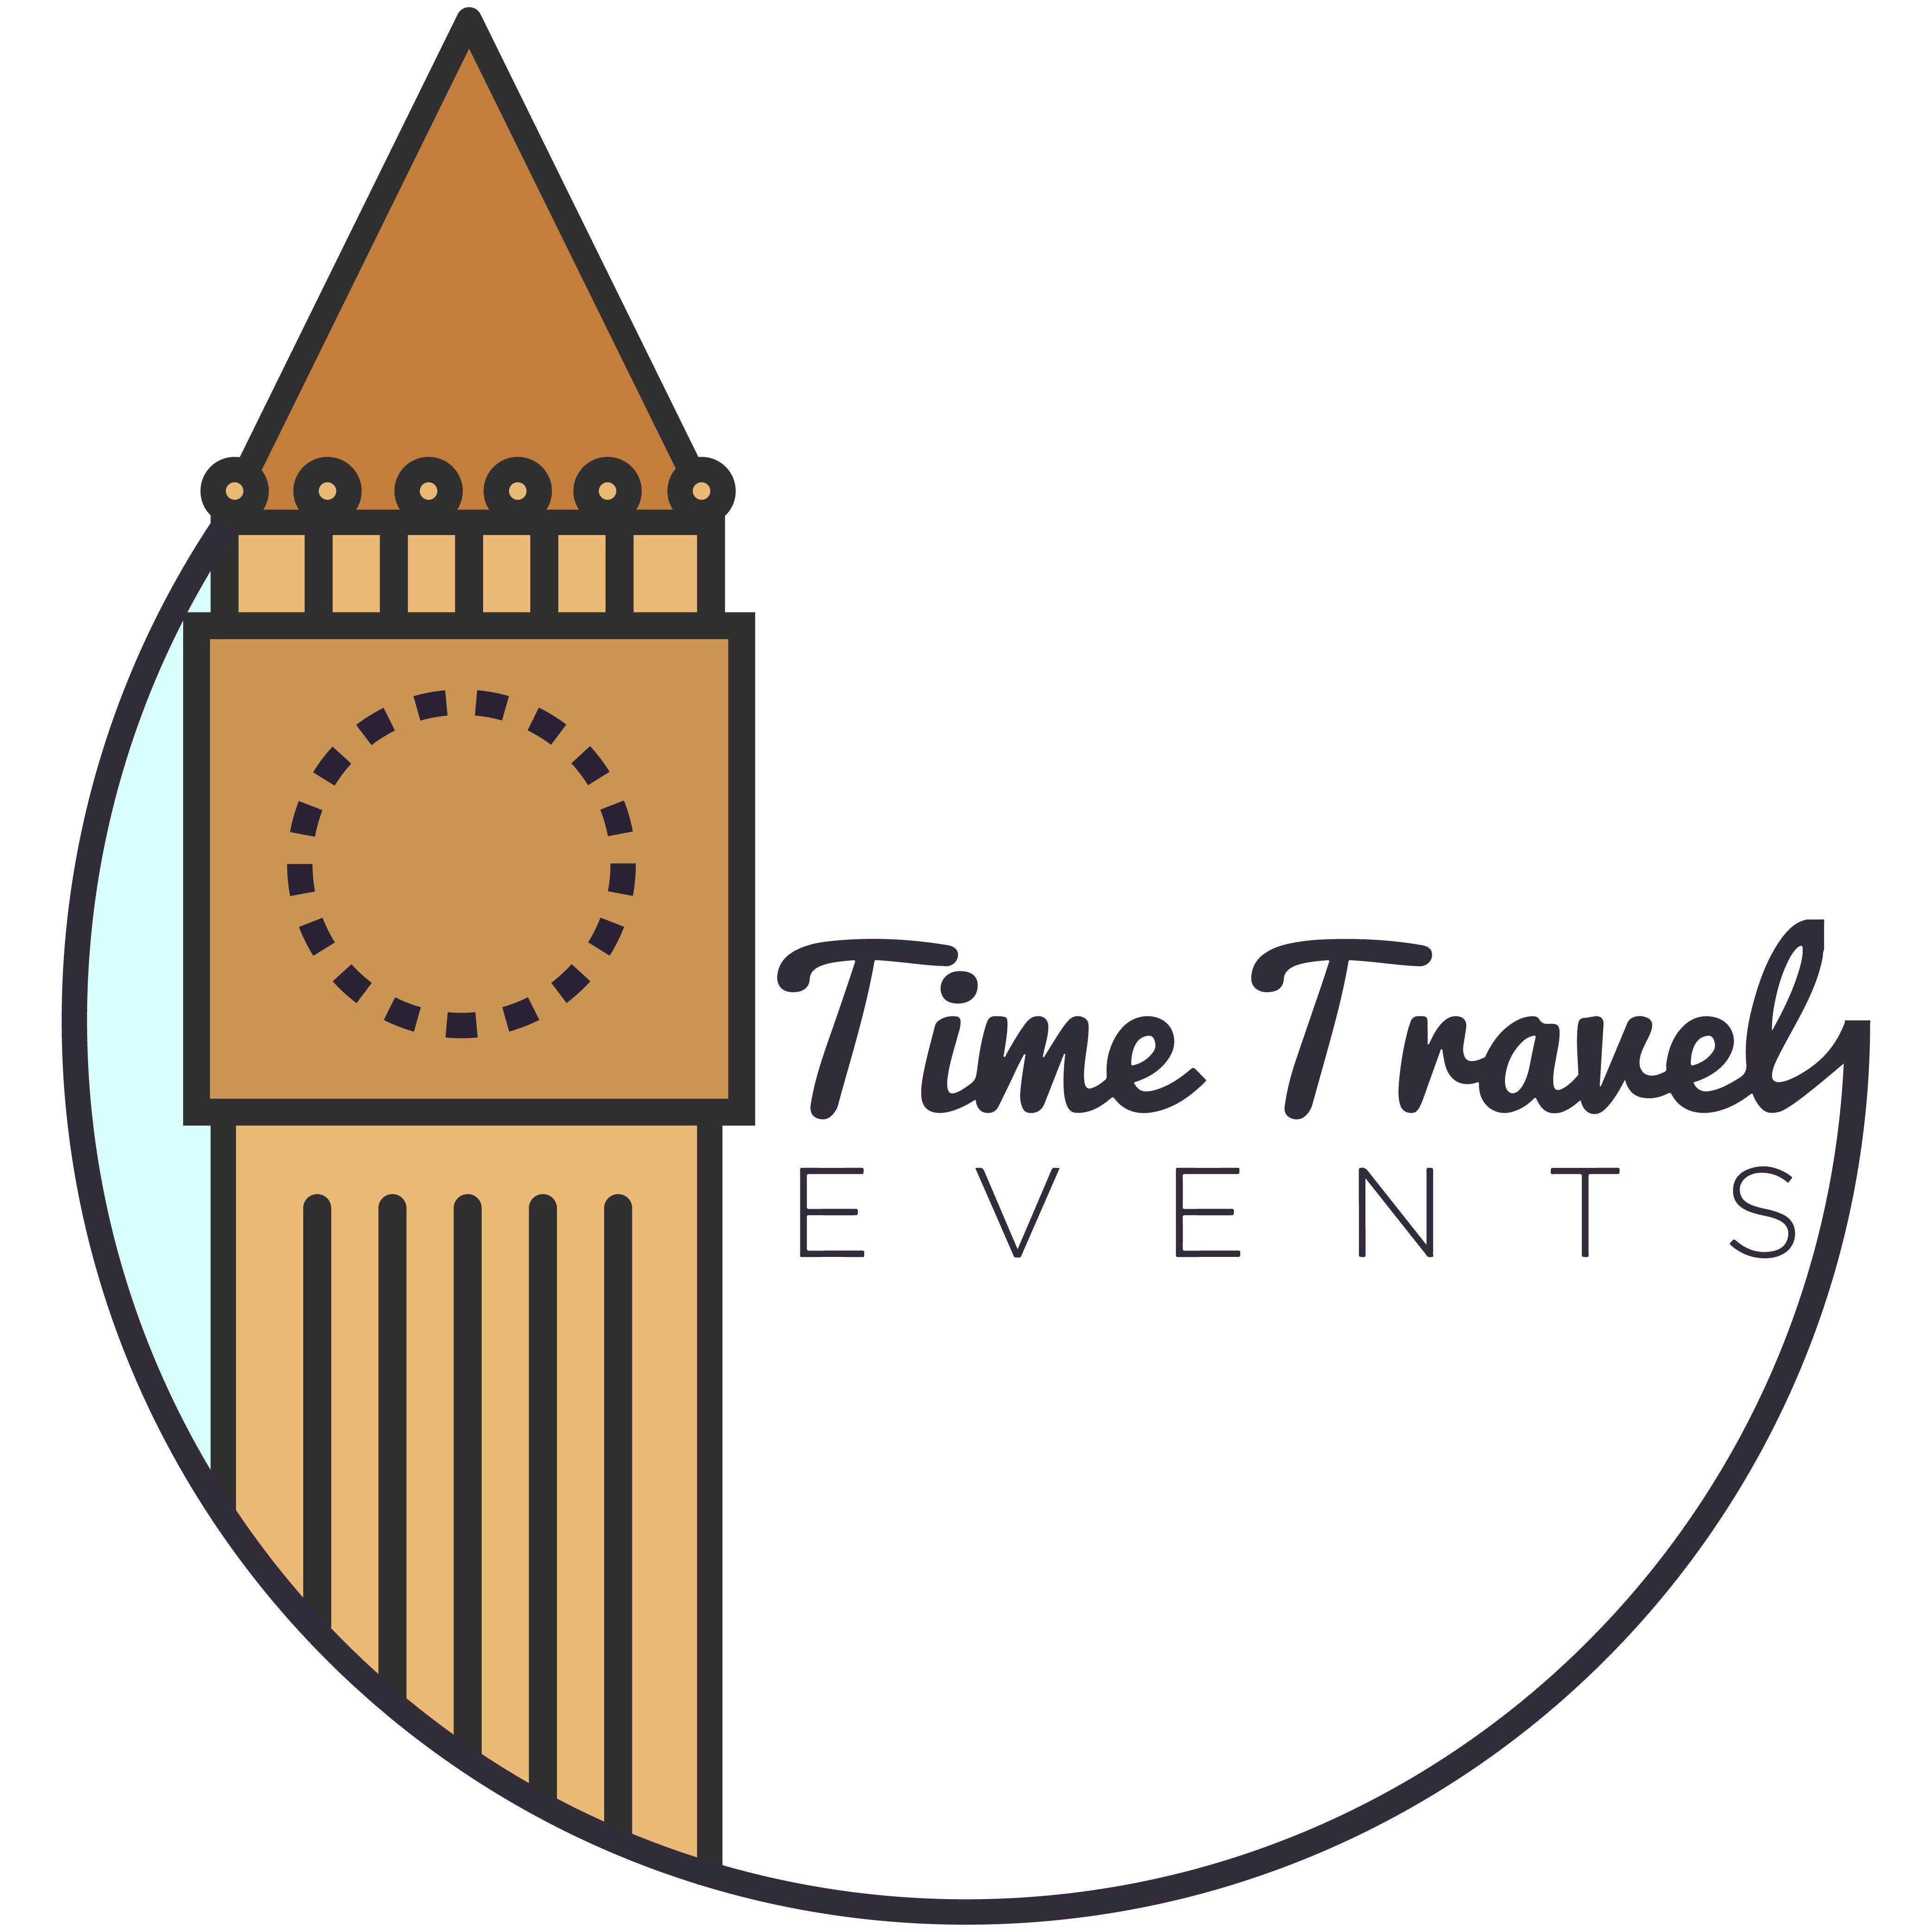 Time Travel Events